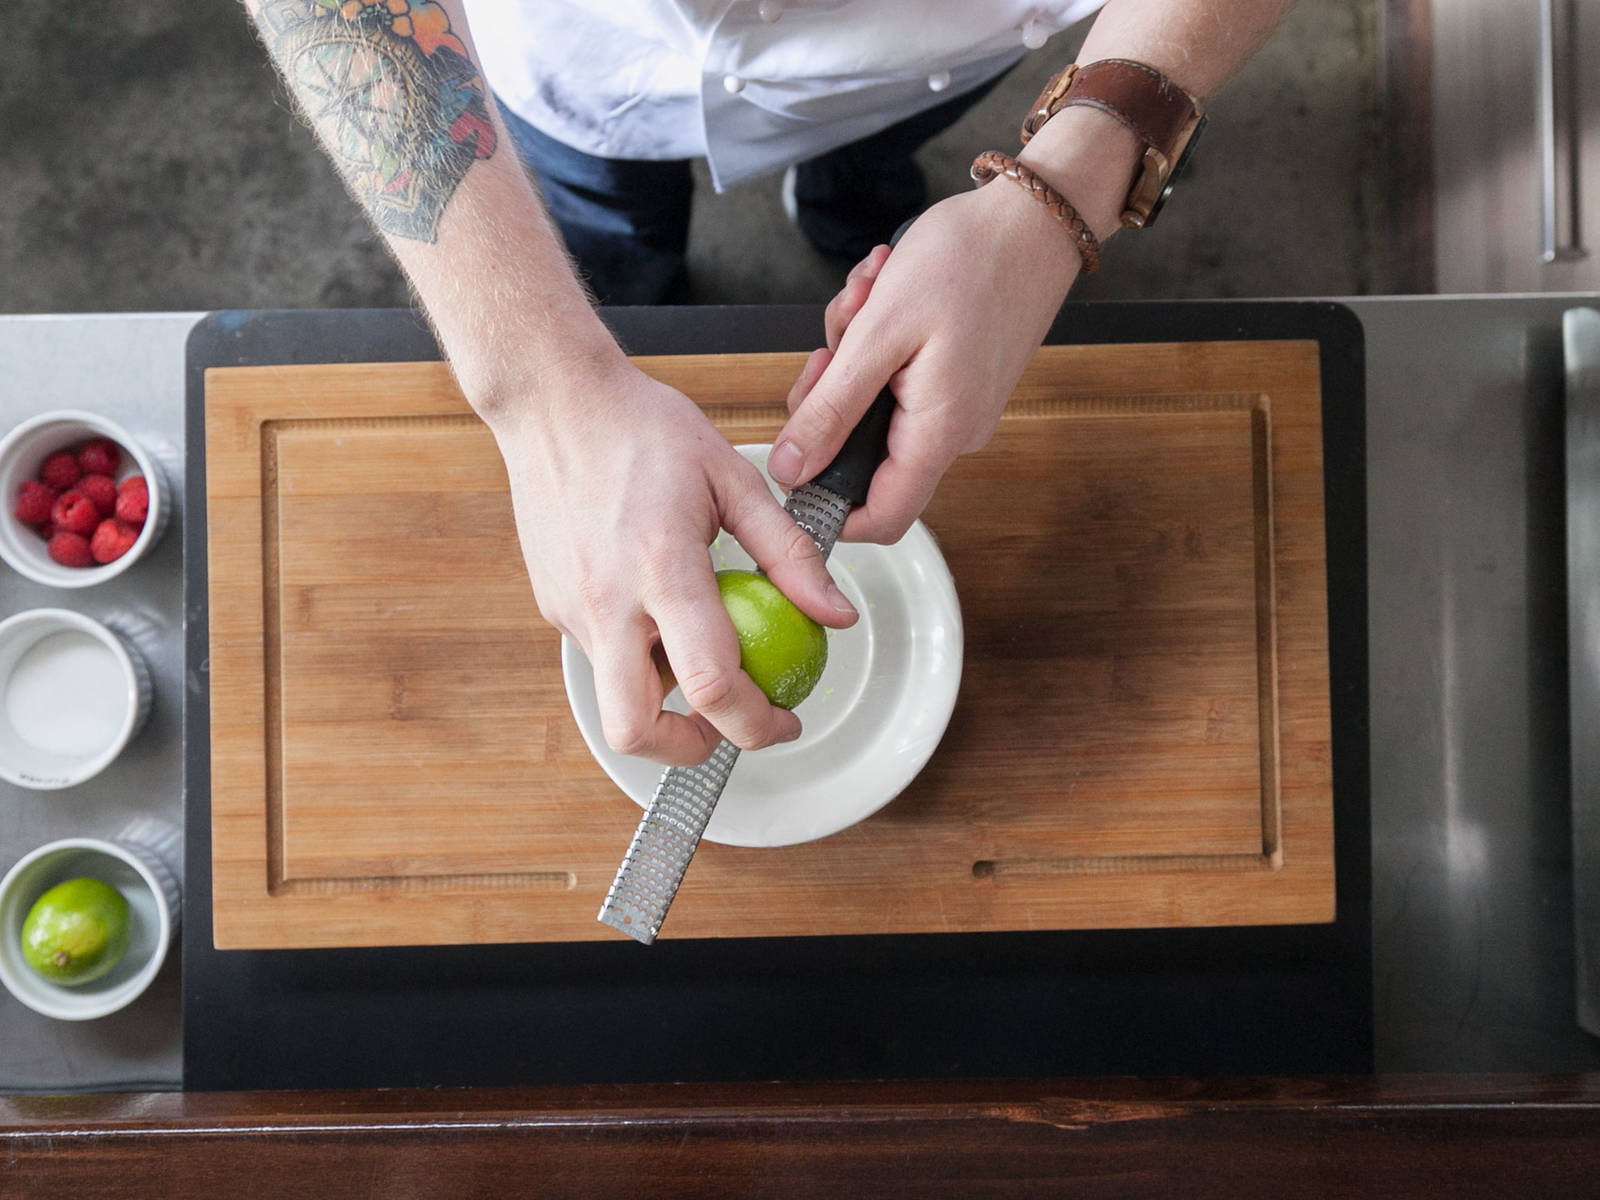 Grate lime peel. Cover a microwave-safe plate with plastic wrap and transfer lime peel on top. Microwave on high for approx. 10 – 15 sec. Set aside.